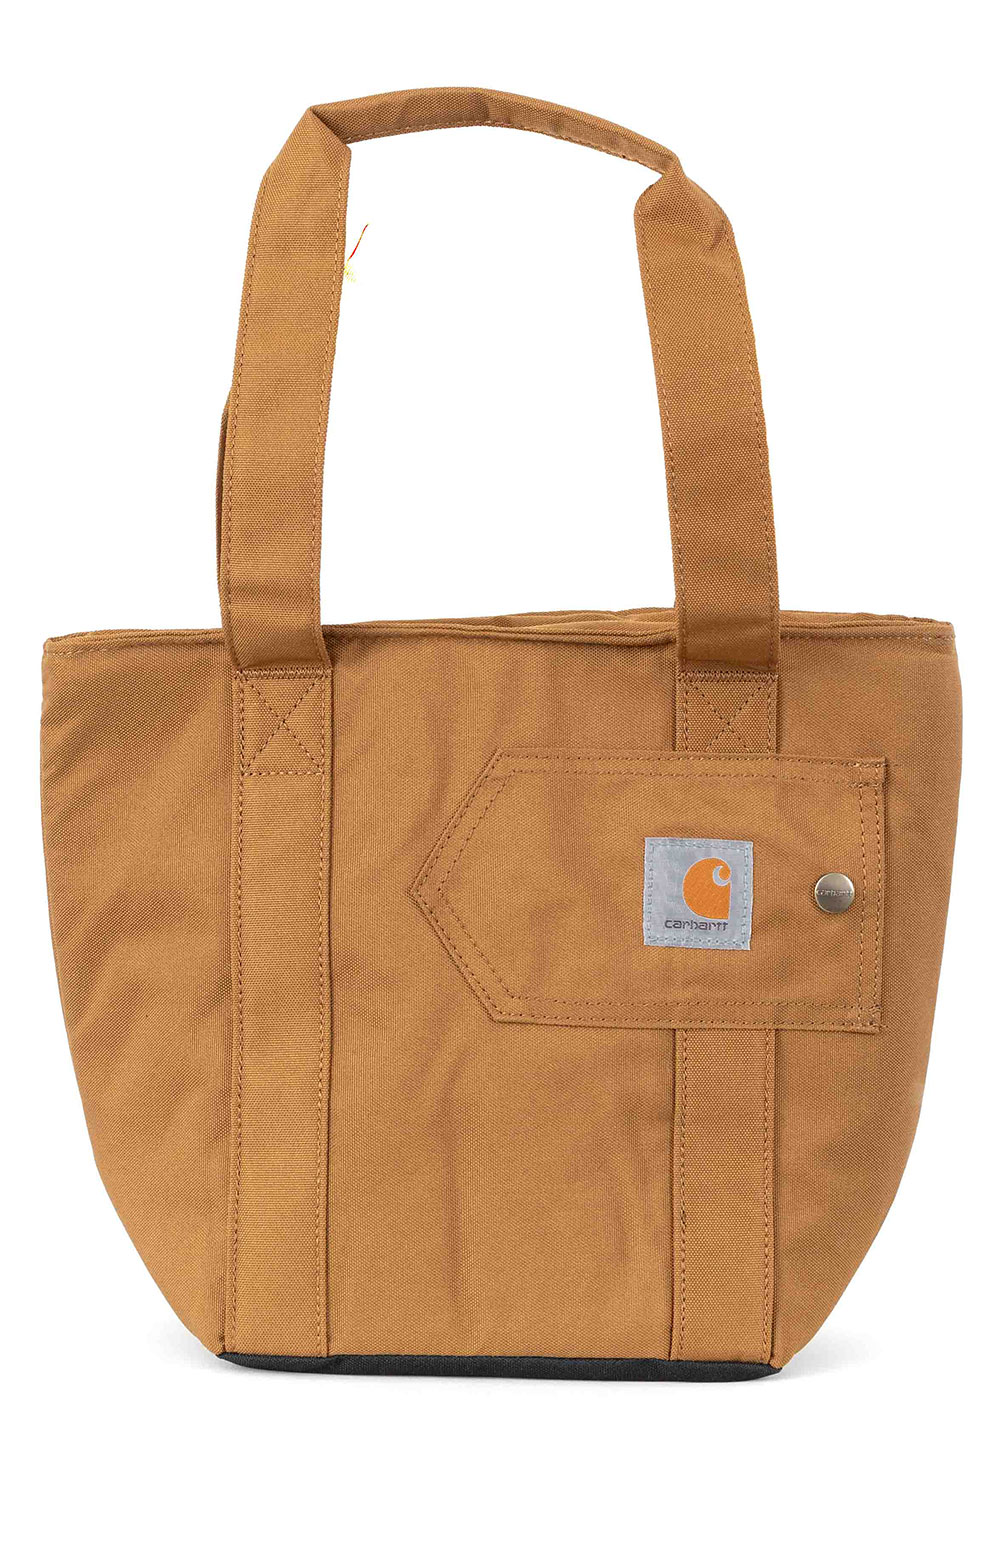 Lunch Tote Bag - Carhartt Brown